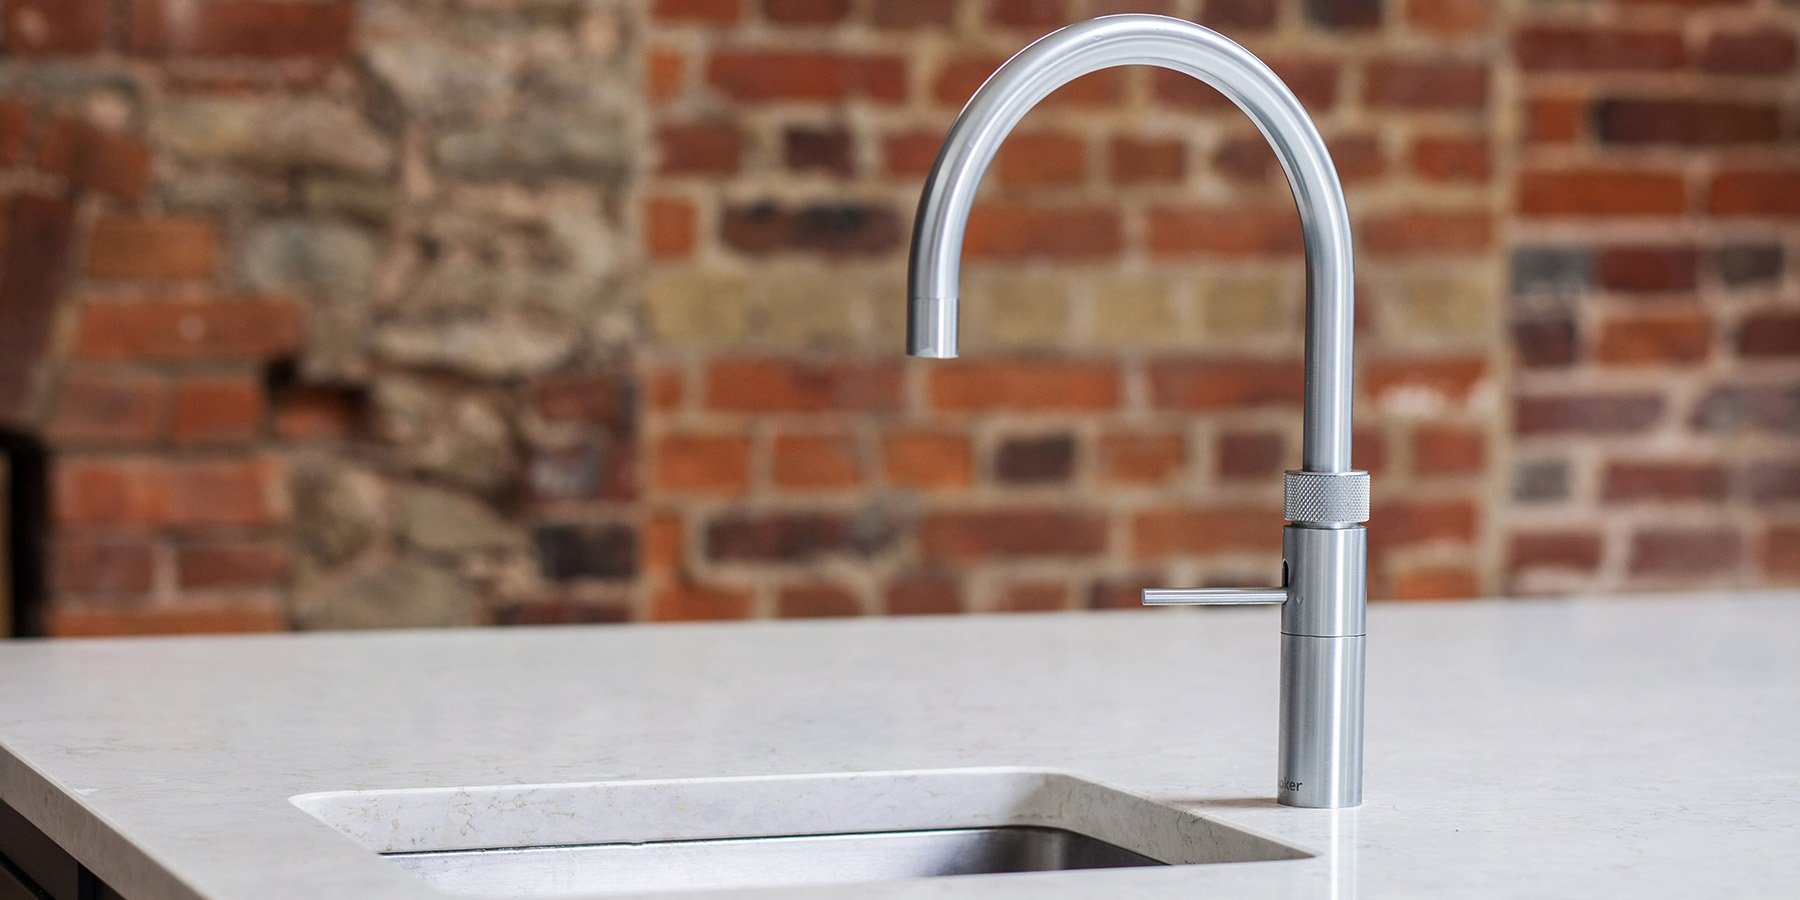 Quooker Fusion Boiling Water Tap. - Burlanes kitchen with Quooker Fusion boiling water tap.